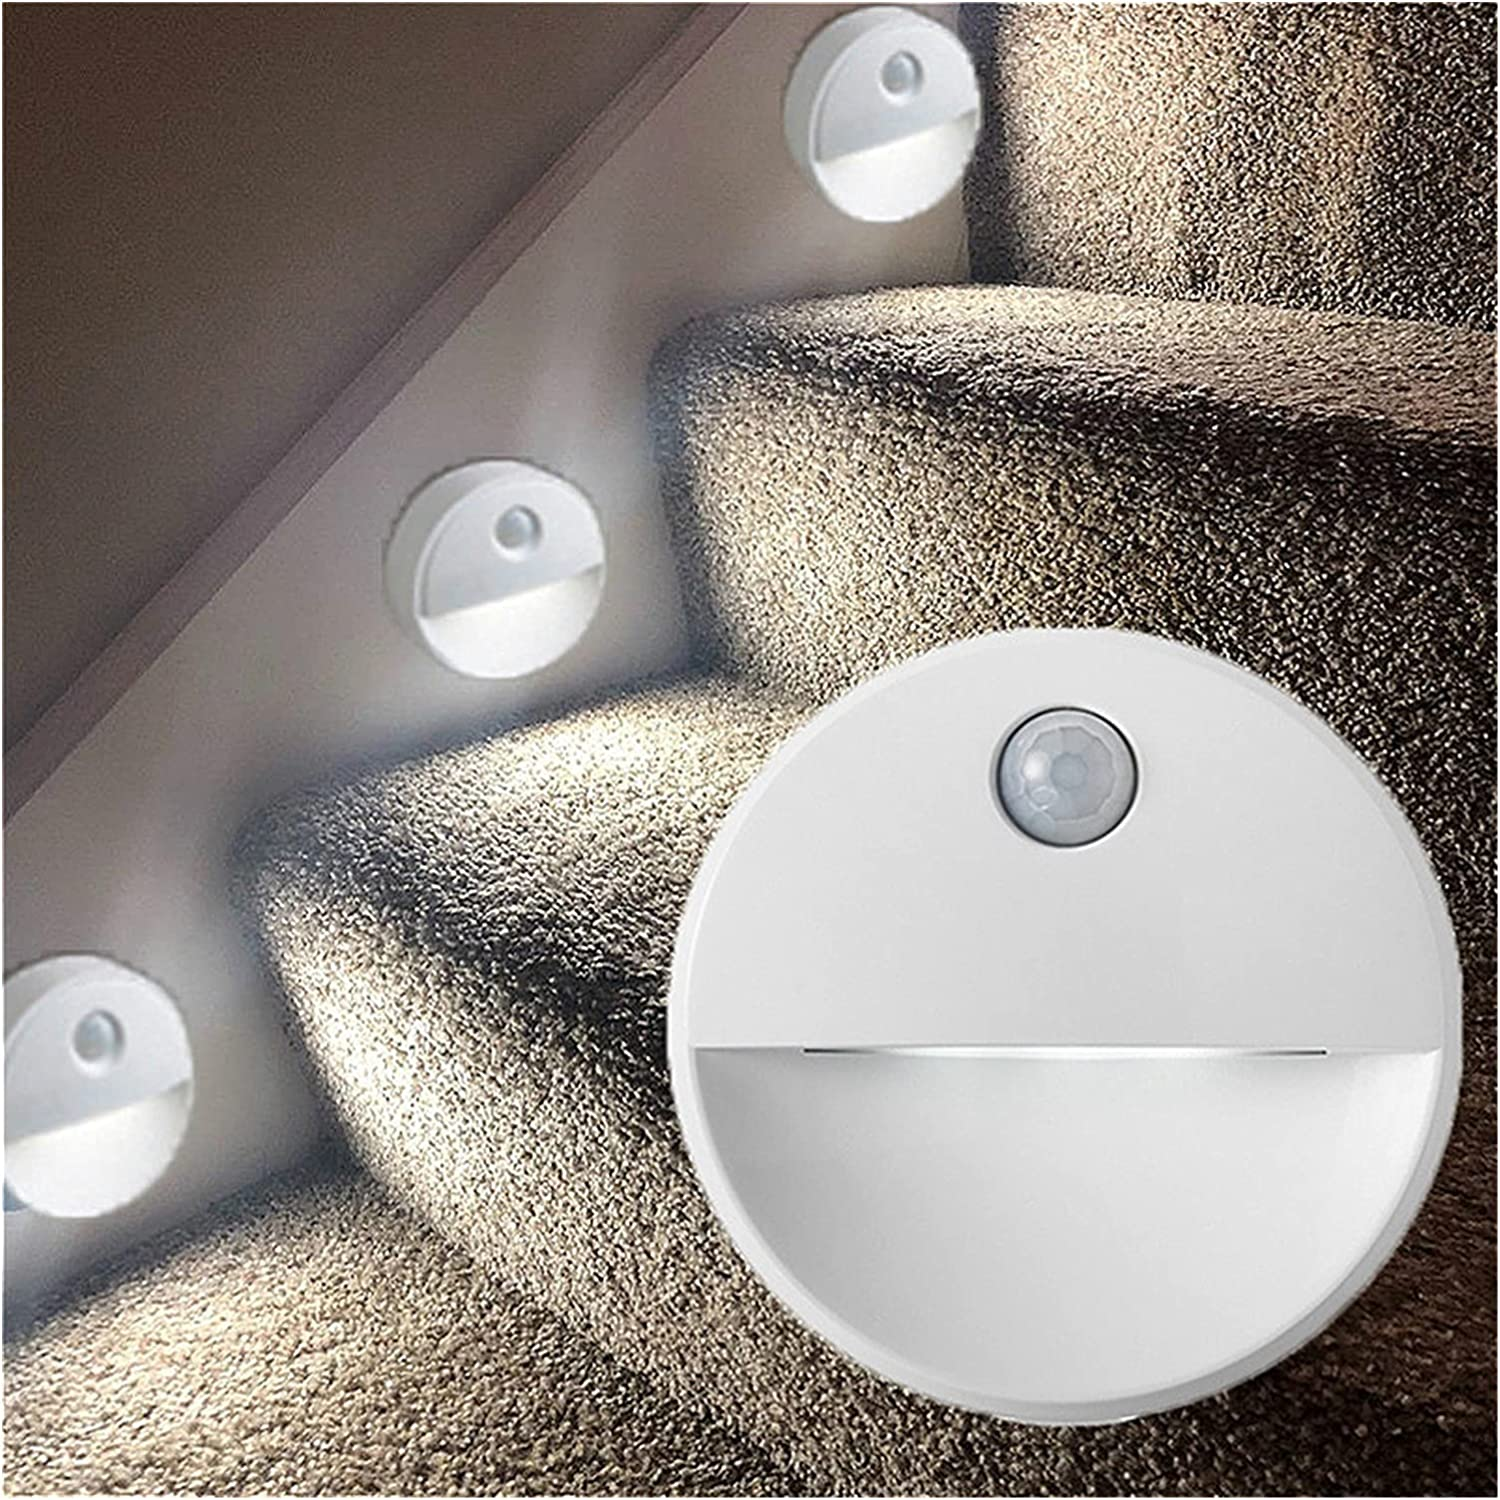 PIR Motion Super intense Fixed price for sale SALE Sensor LED Novelty Wall Night Light L Ceiling Cabinet